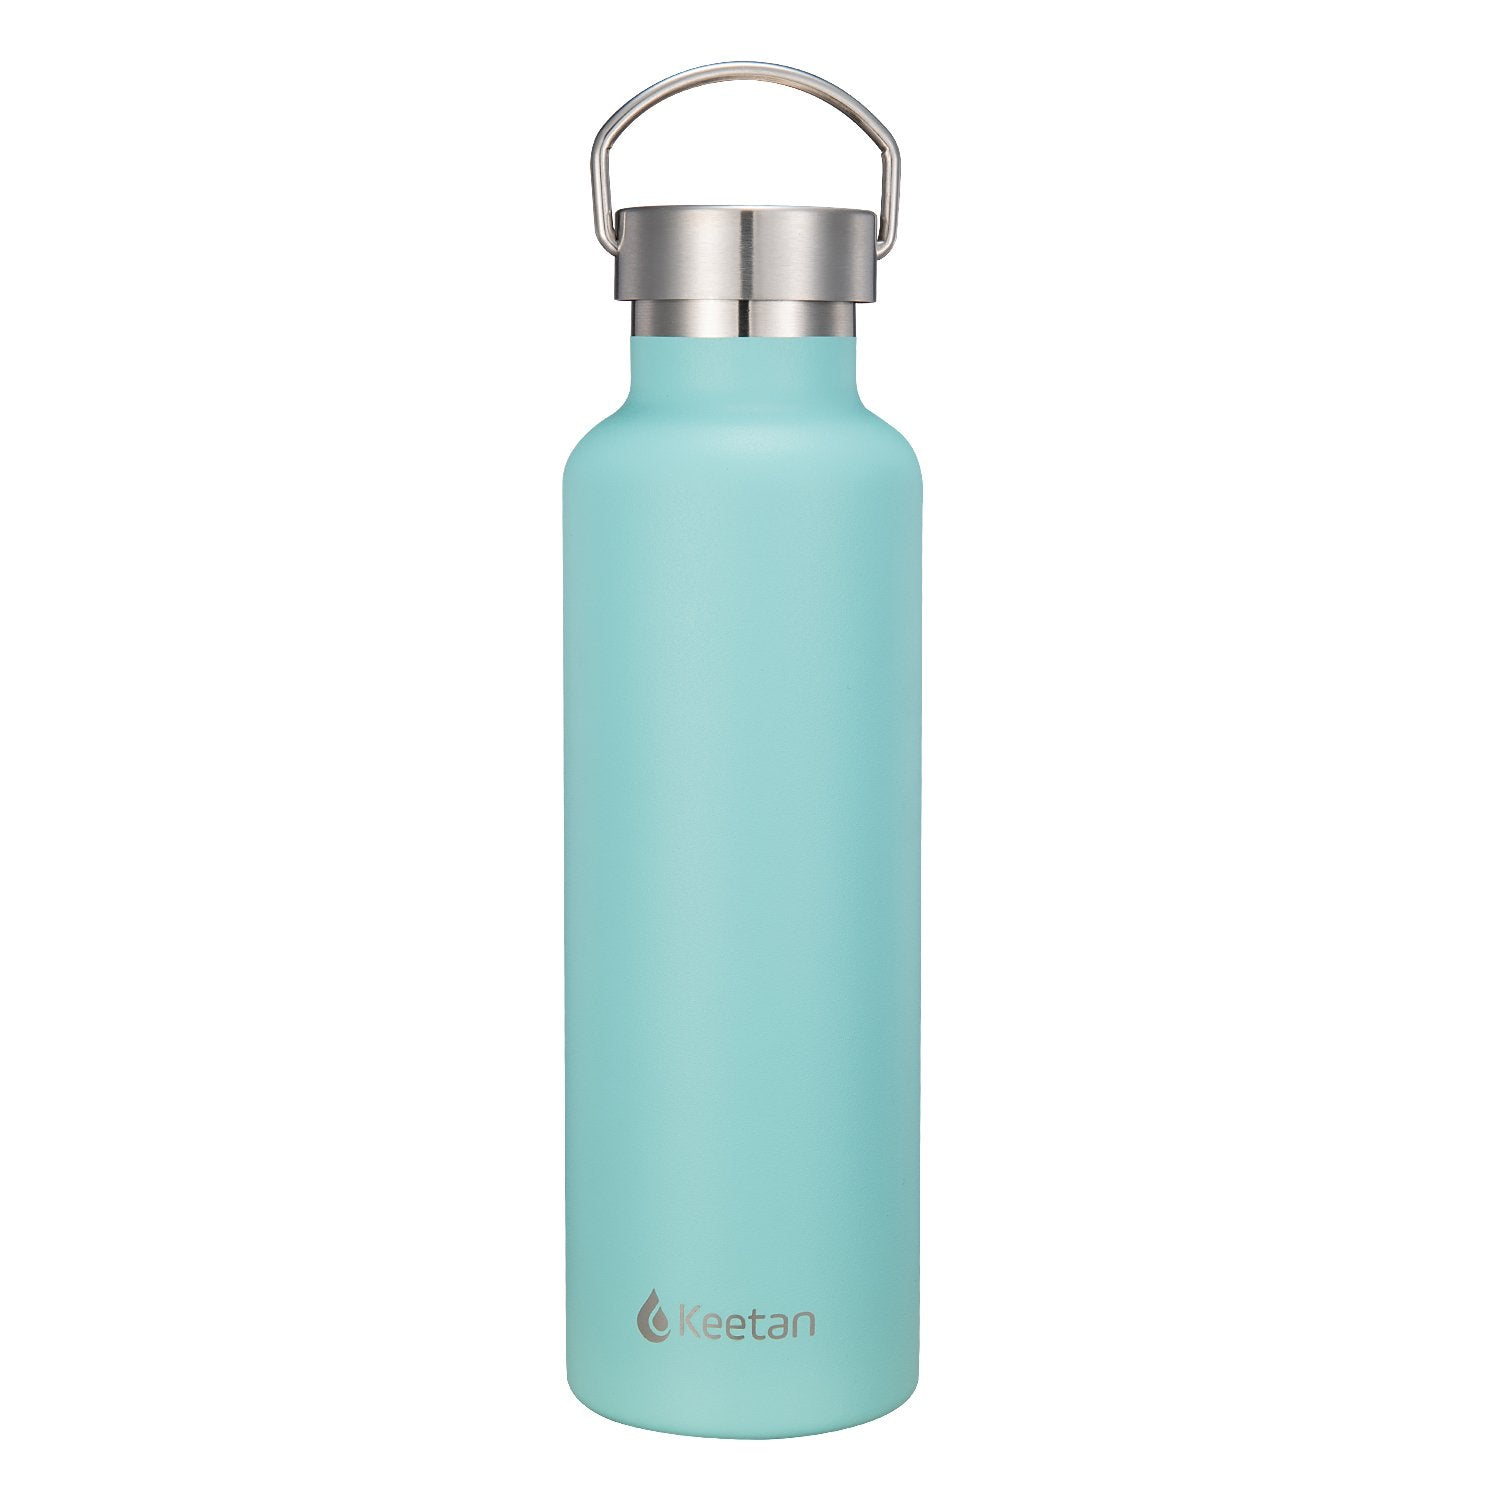 Keetan POLO Water Bottle-Blue